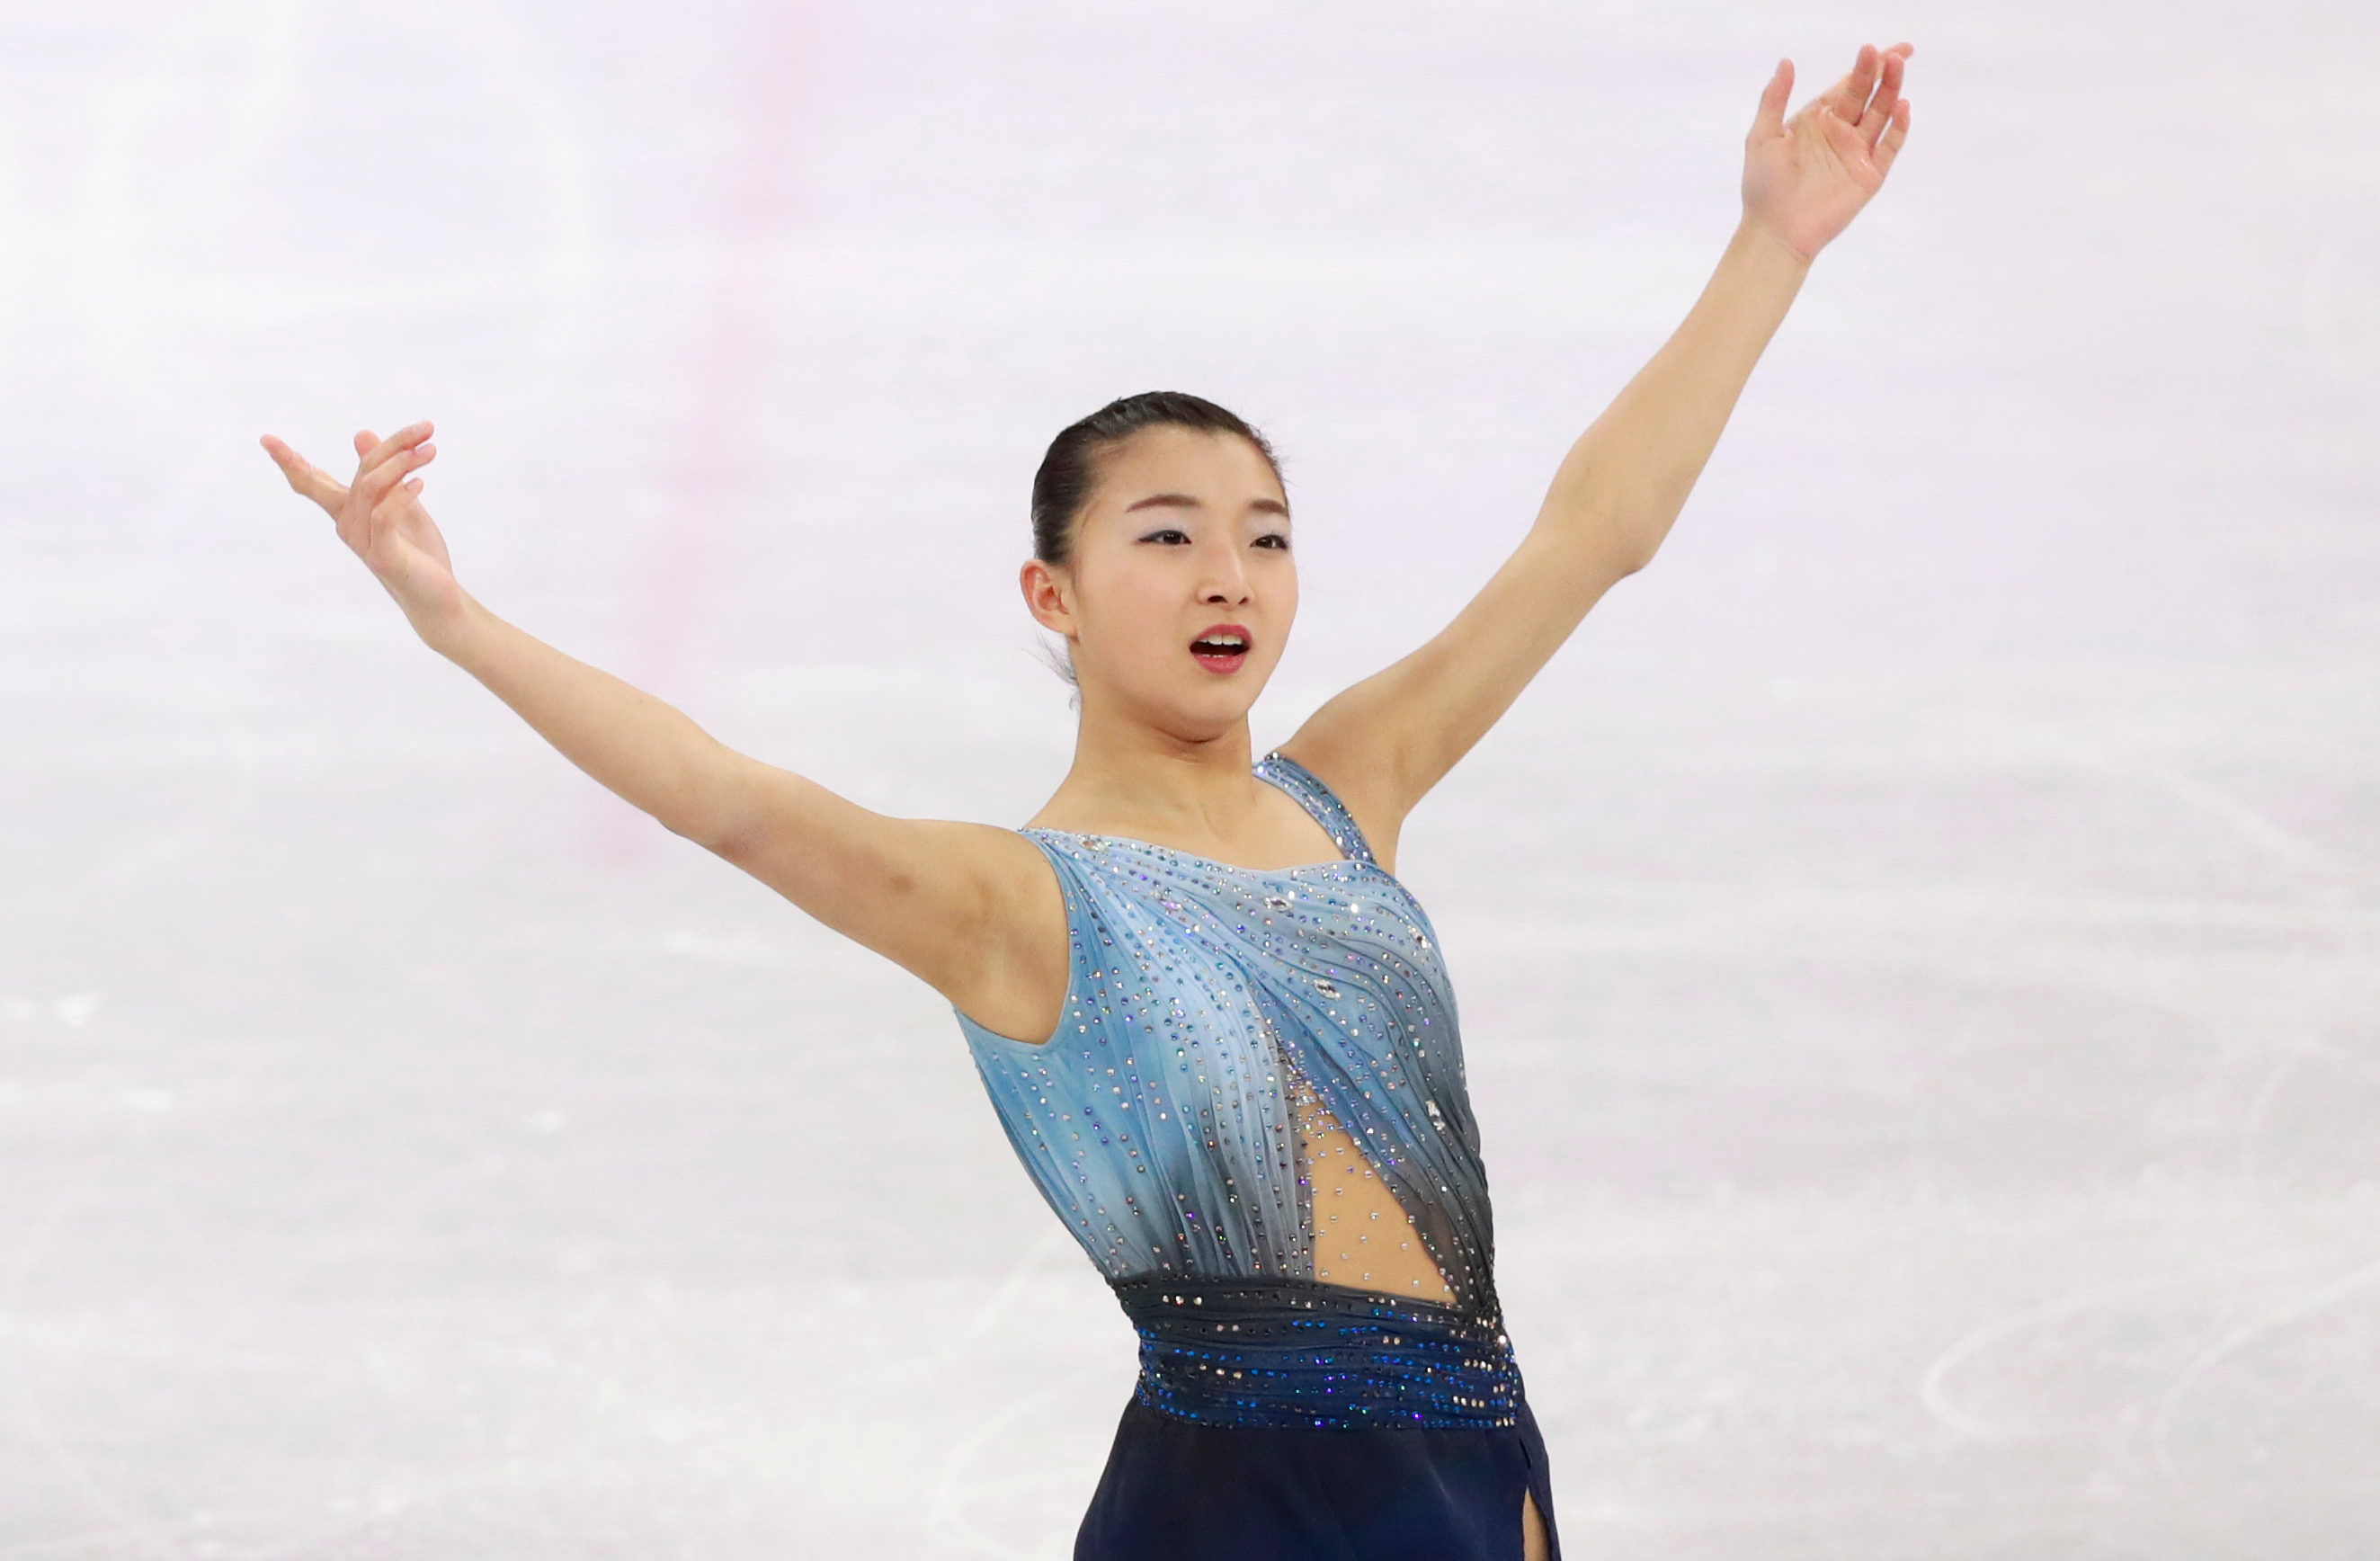 Kaori Sakamoto of Japan in action during the Women Single Short Program of the Figure Skating competition at the Gangneung Ice Arena during the PyeongChang 2018 Olympic Games, South Korea, 21 February 2018.